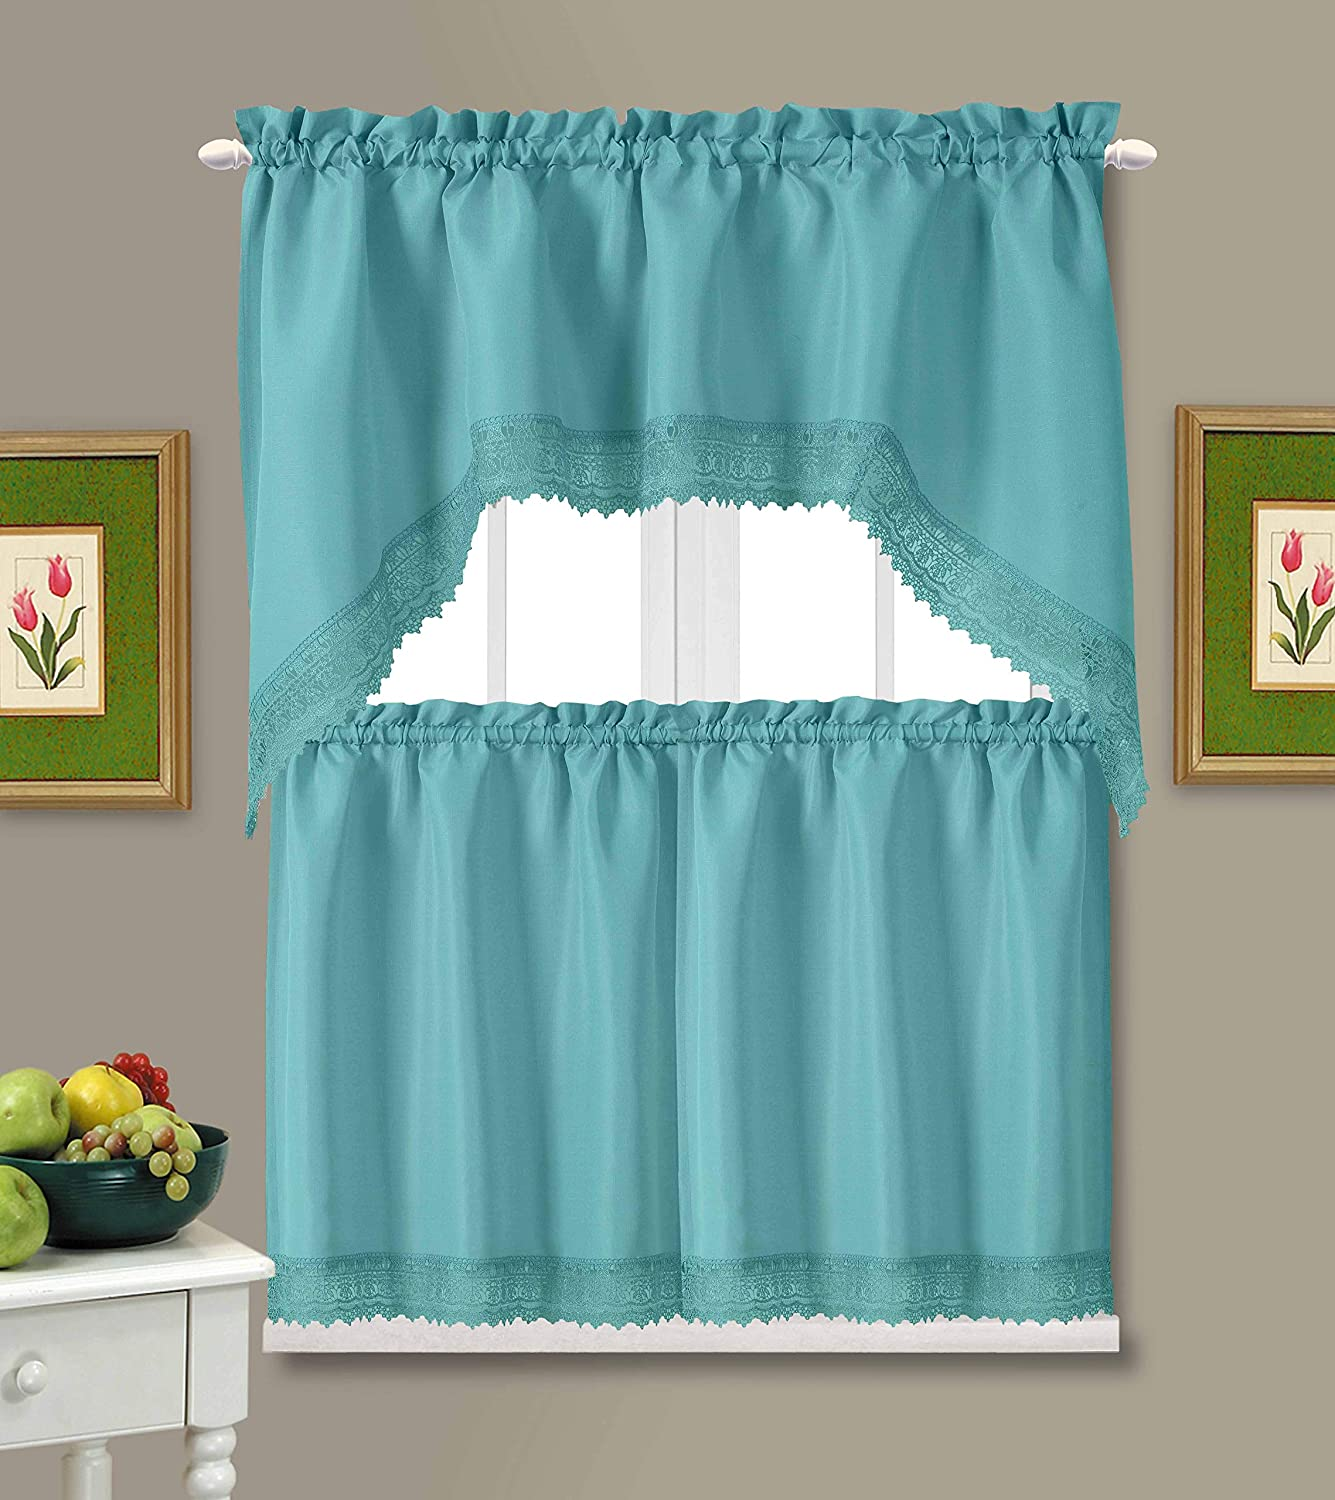 American Linen Café Curtains for Kitchen, Bathroom Curtains with Valance, Embroidered lace Border. (Teal)